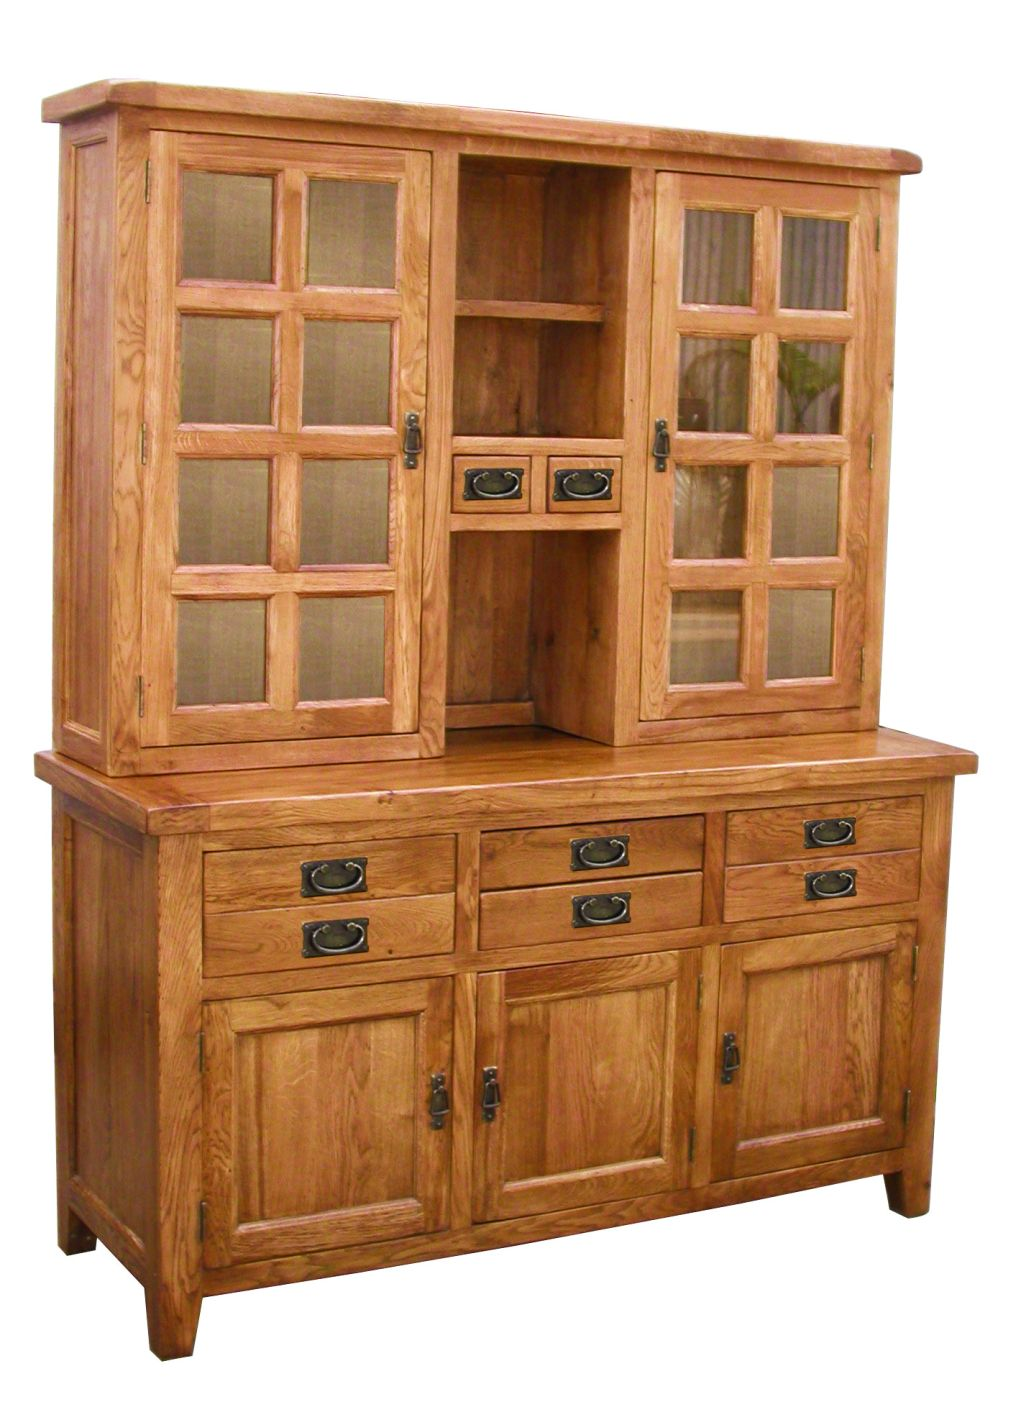 Rustic Solid Oak Dining Room Furniture Large Glass China Cutlery Glazed Dress